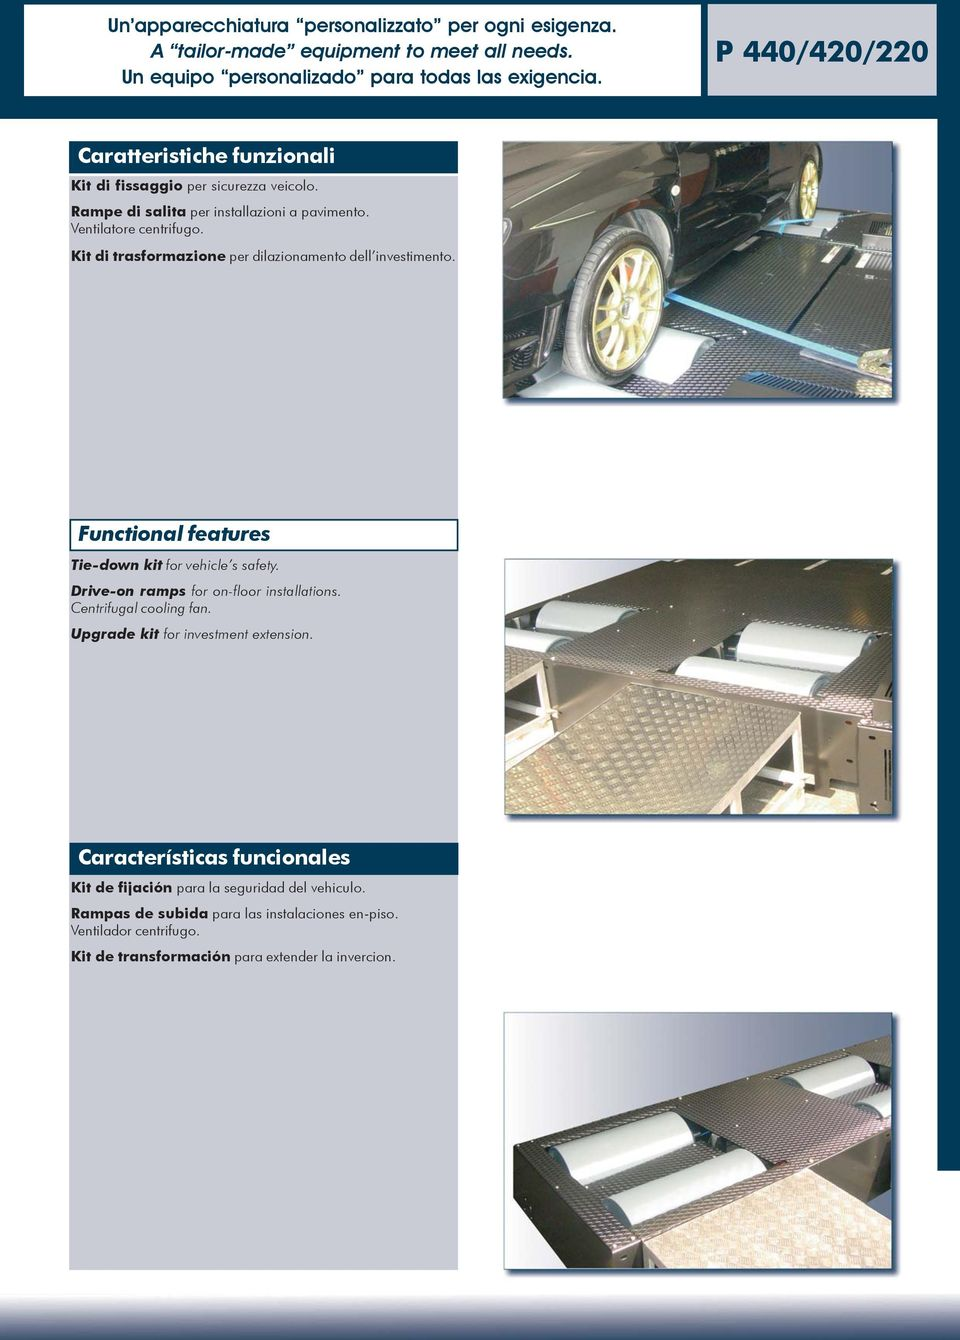 Kit di trasformazione per dilazionamento dell investimento. Functional features Tie-down kit for vehicle s safety. Drive-on ramps for on-floor installations.